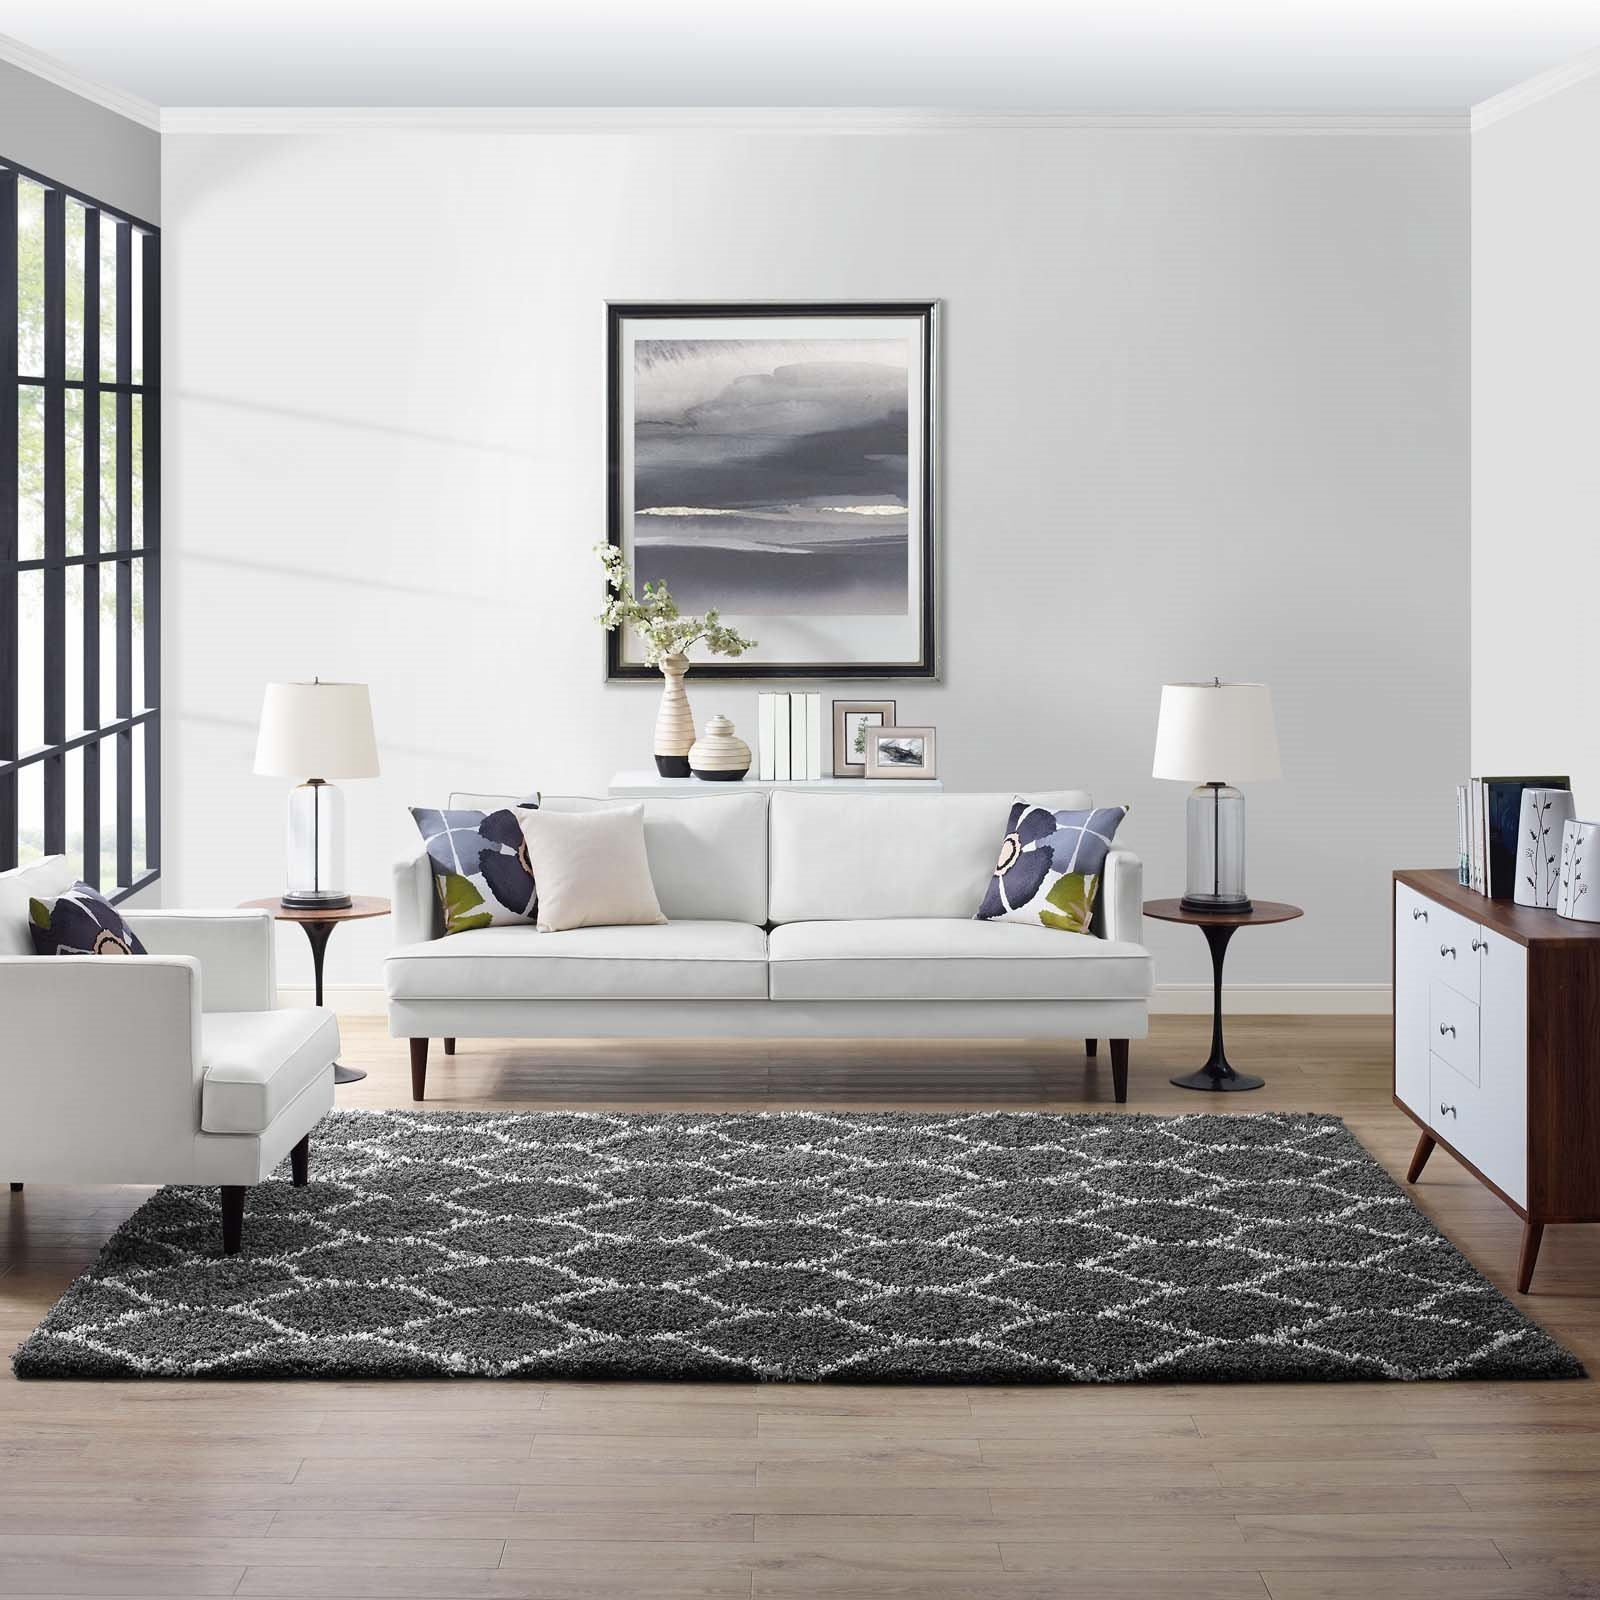 Solvea Moroccan Trellis 8x10 Shag Area Rug in Dark Gray and Ivory Product Image